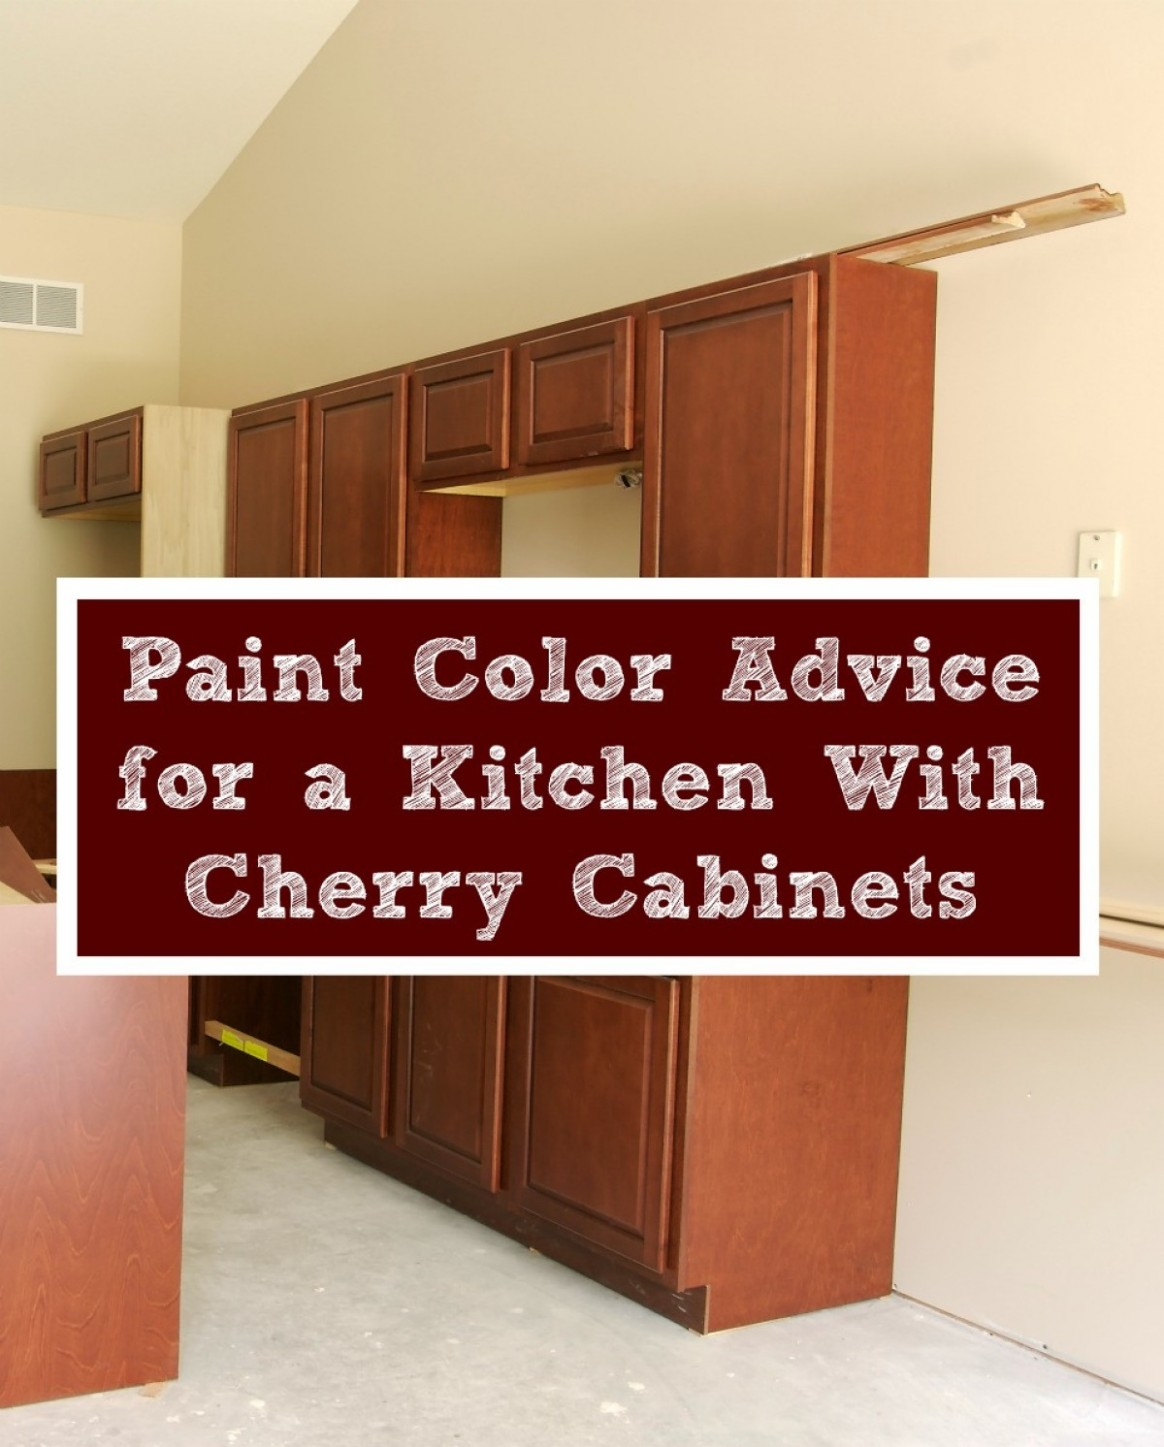 Paint Color Advice for a Kitchen With Cherry Cabinets  ThriftyFun - Kitchen Wall Paint Colors With Cherry Cabinets